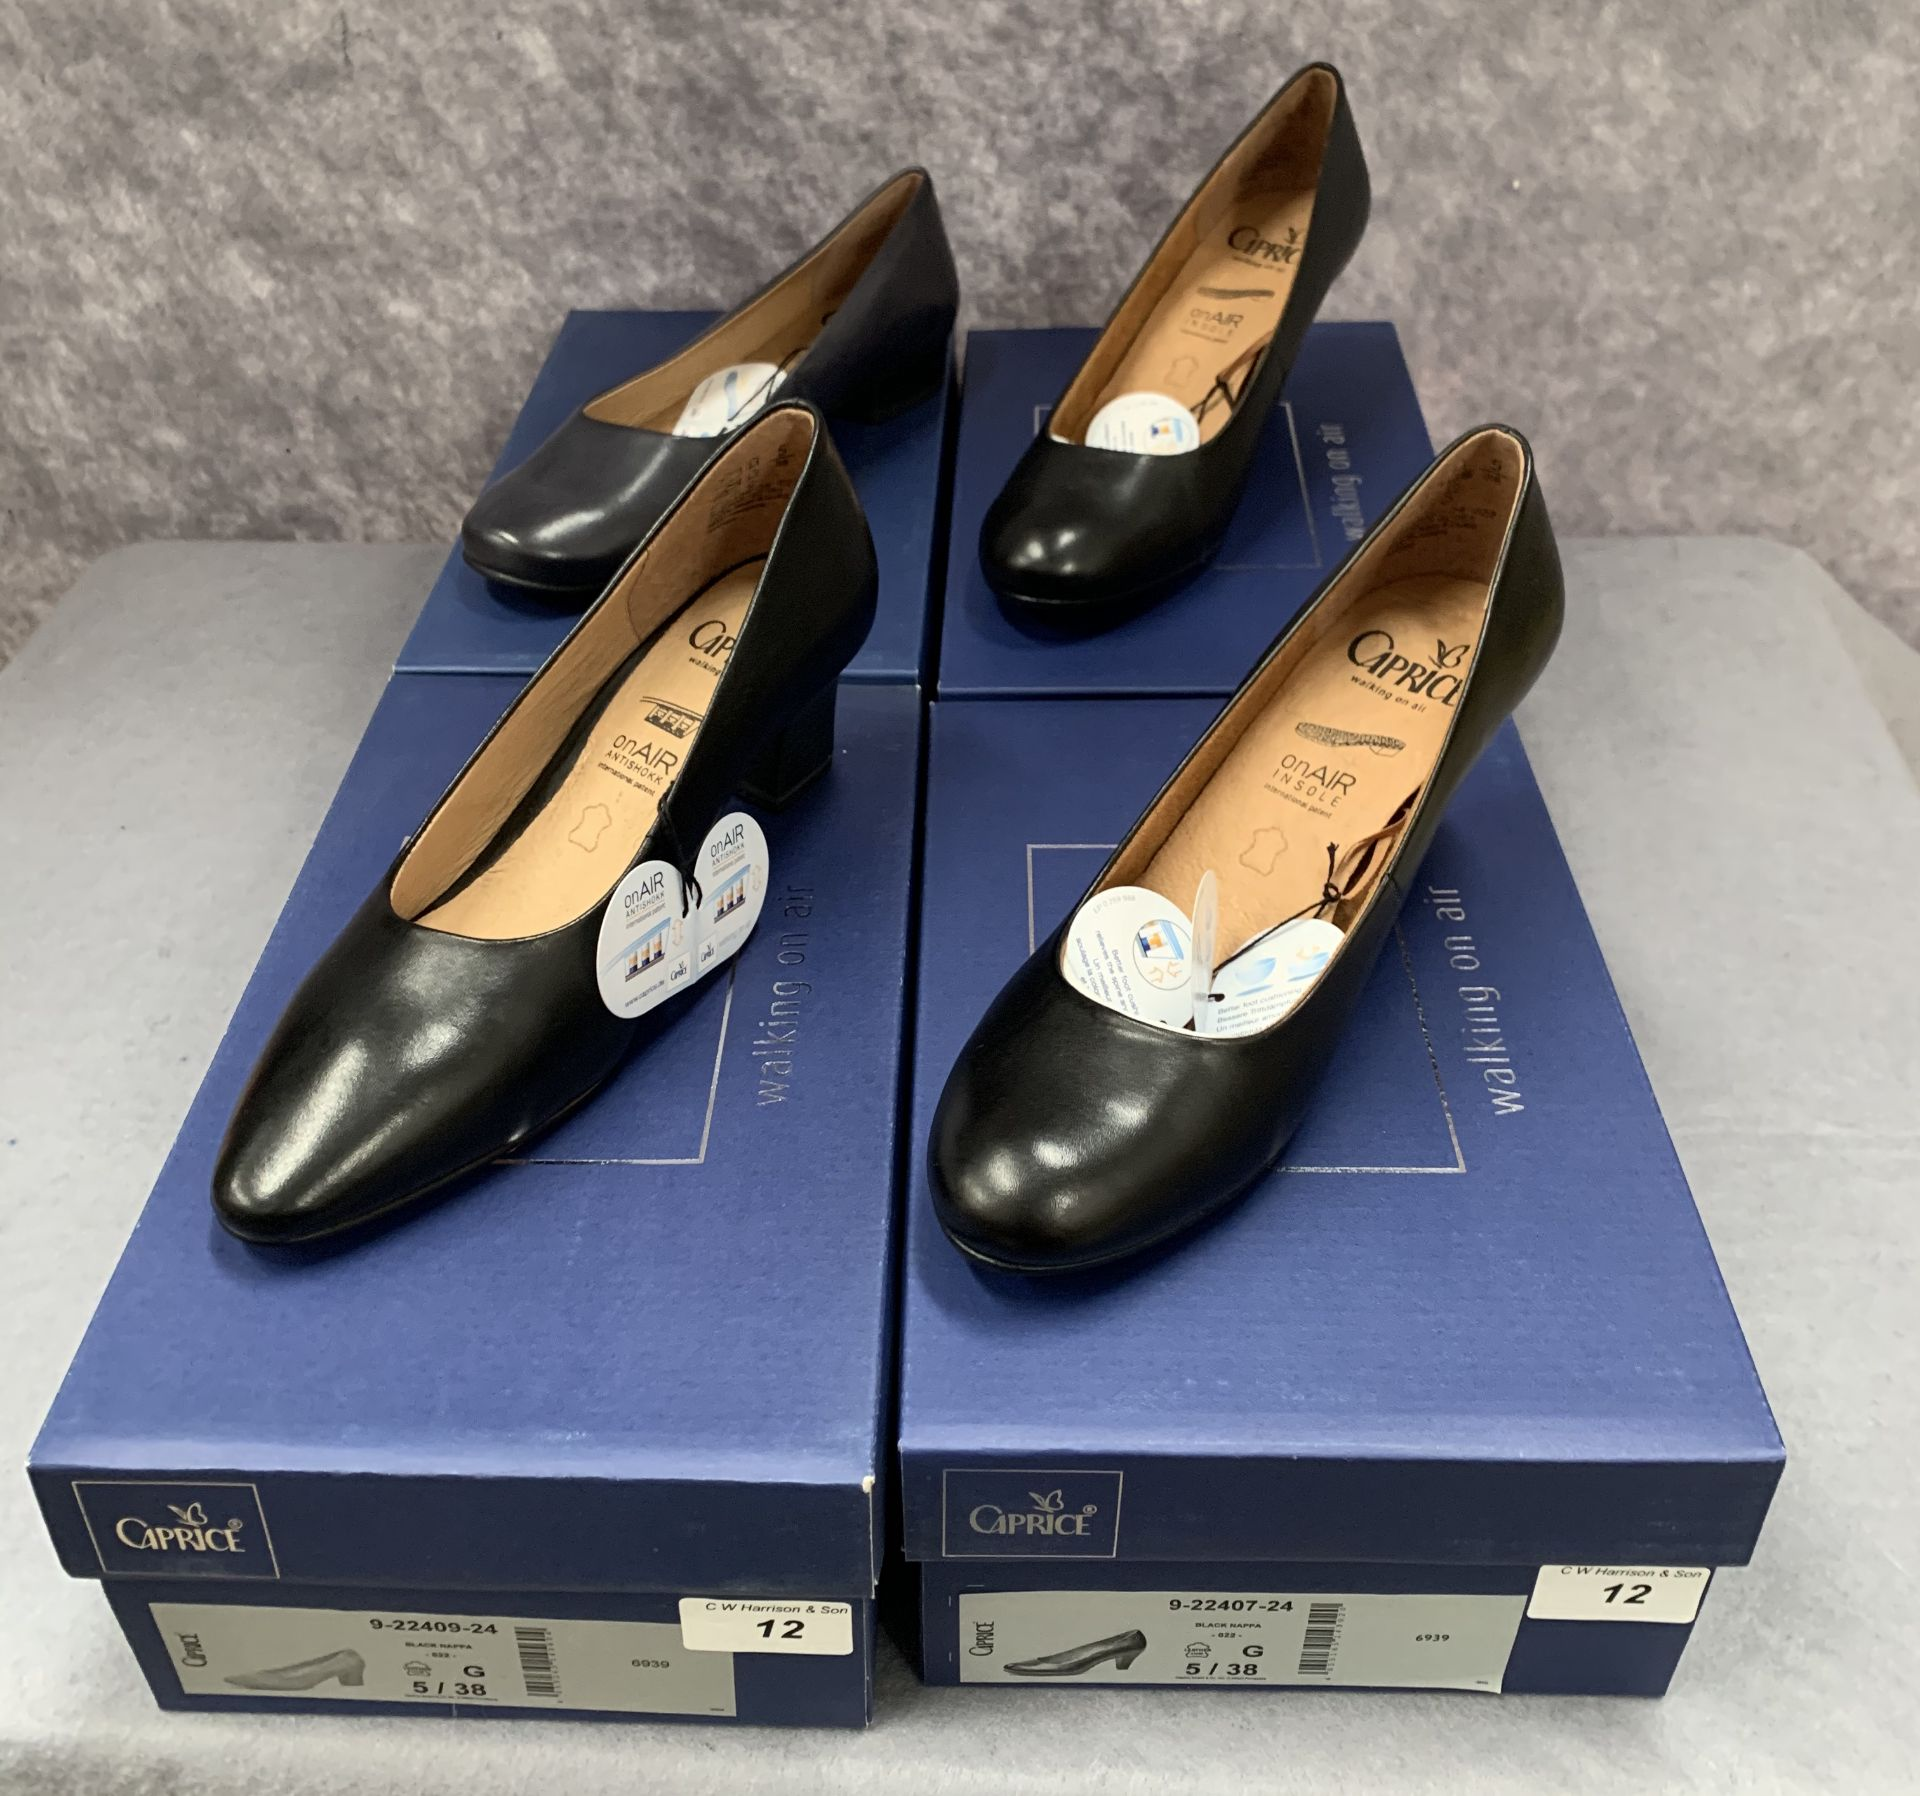 Lot 12 - Four pairs of Caprice ladies shoes in black (3) and navy (1), various styles, size 5,